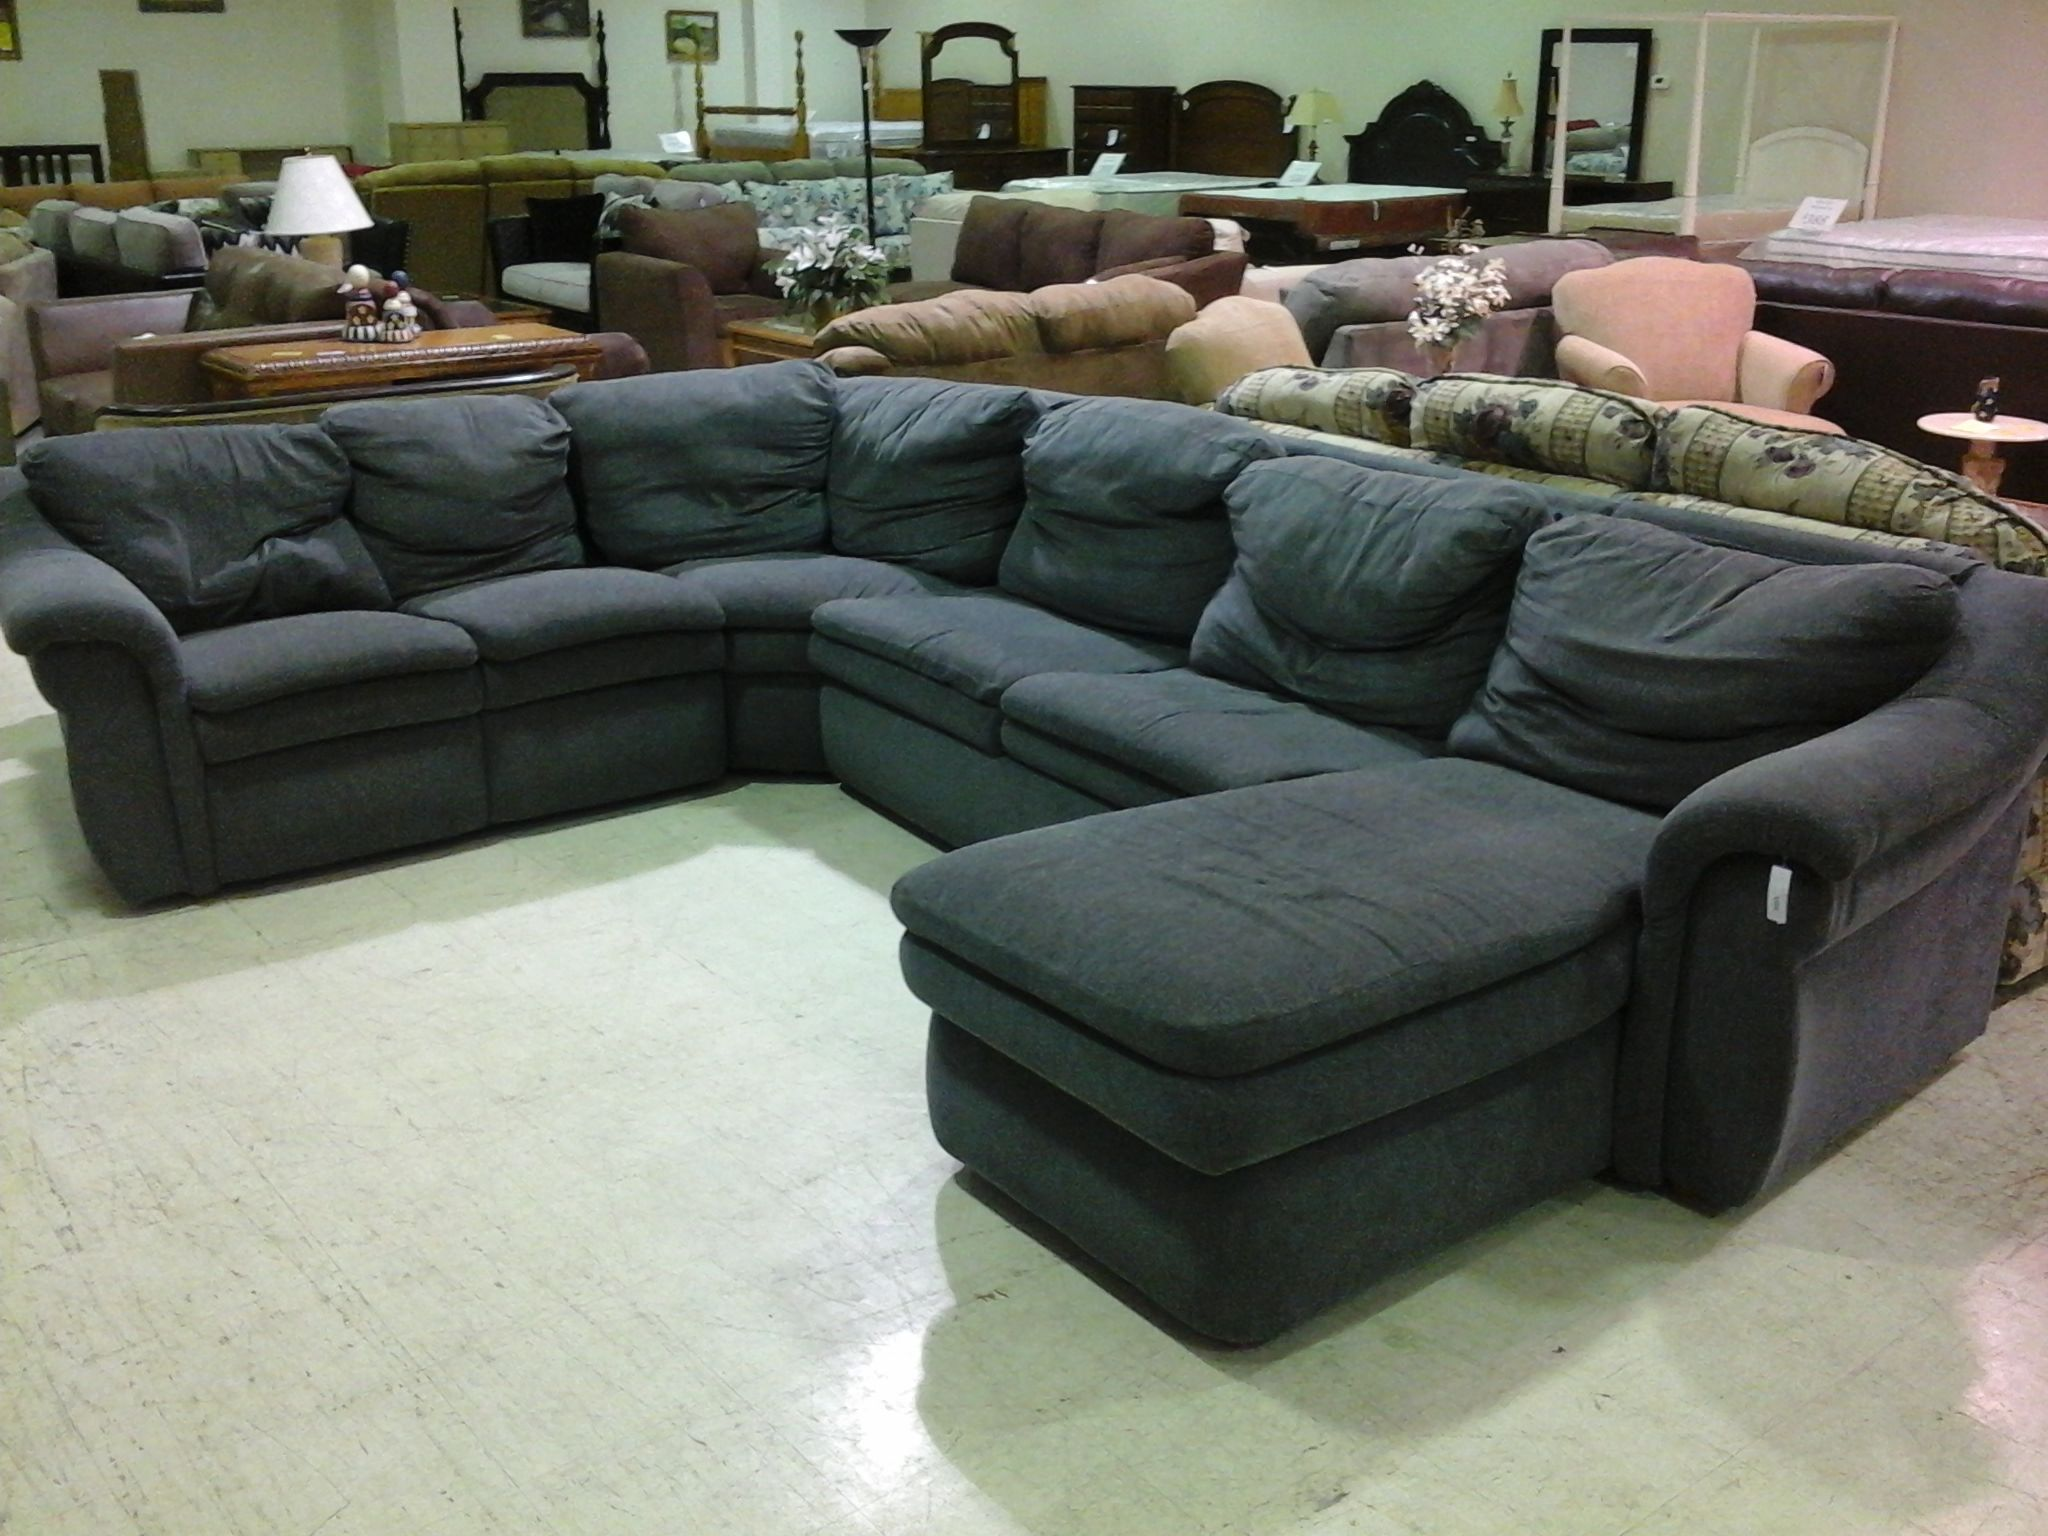 Beautiful Sectional Sleeper Sofa With Recliners Br Decor Pinterest